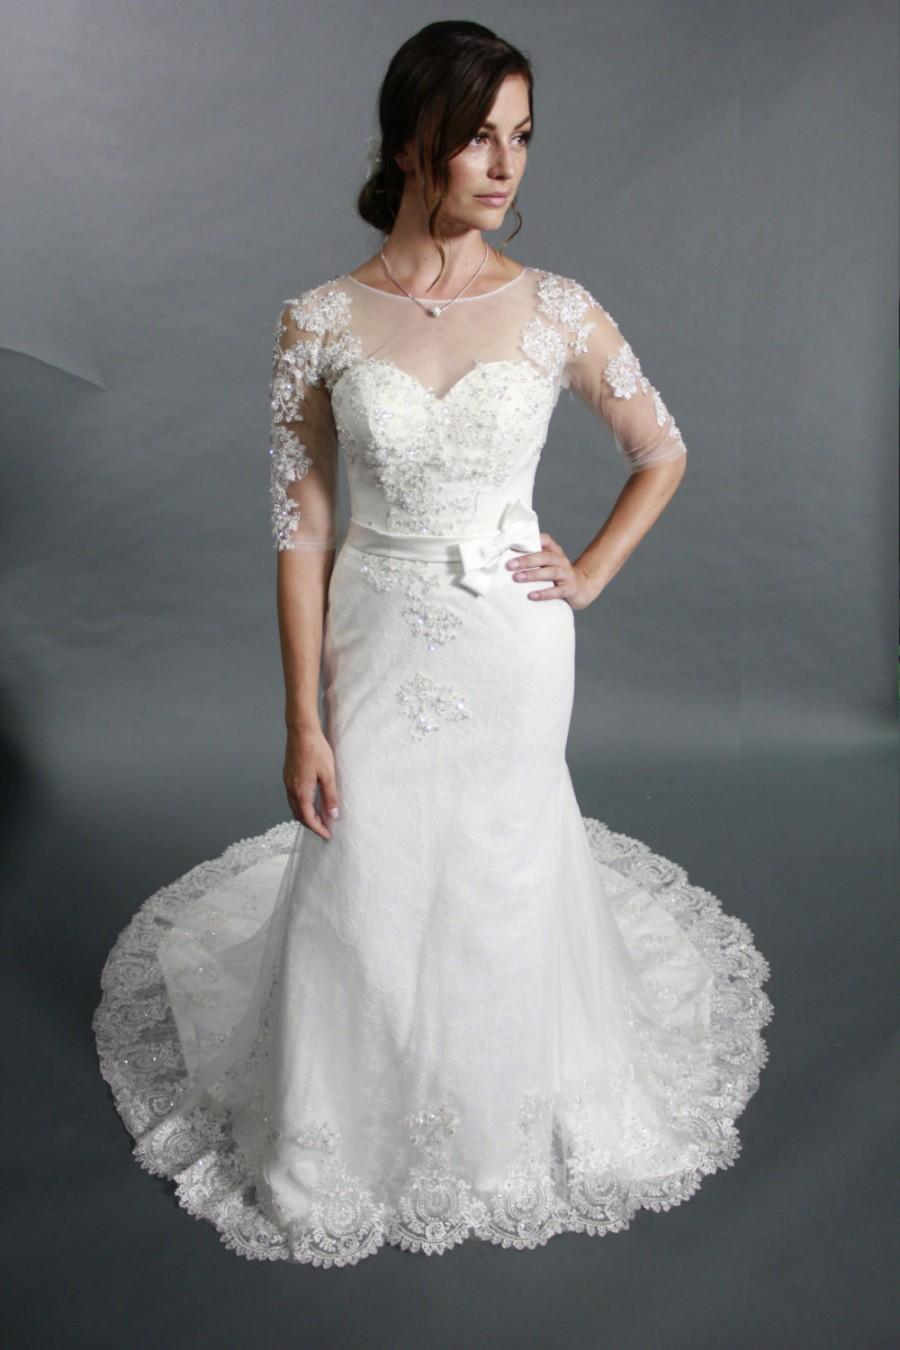 Elegant Mermaid Half Sleeves Scoop Neck Embroidered Lace Beadings With Crystal Beads Wedding Dress Bridal Gown